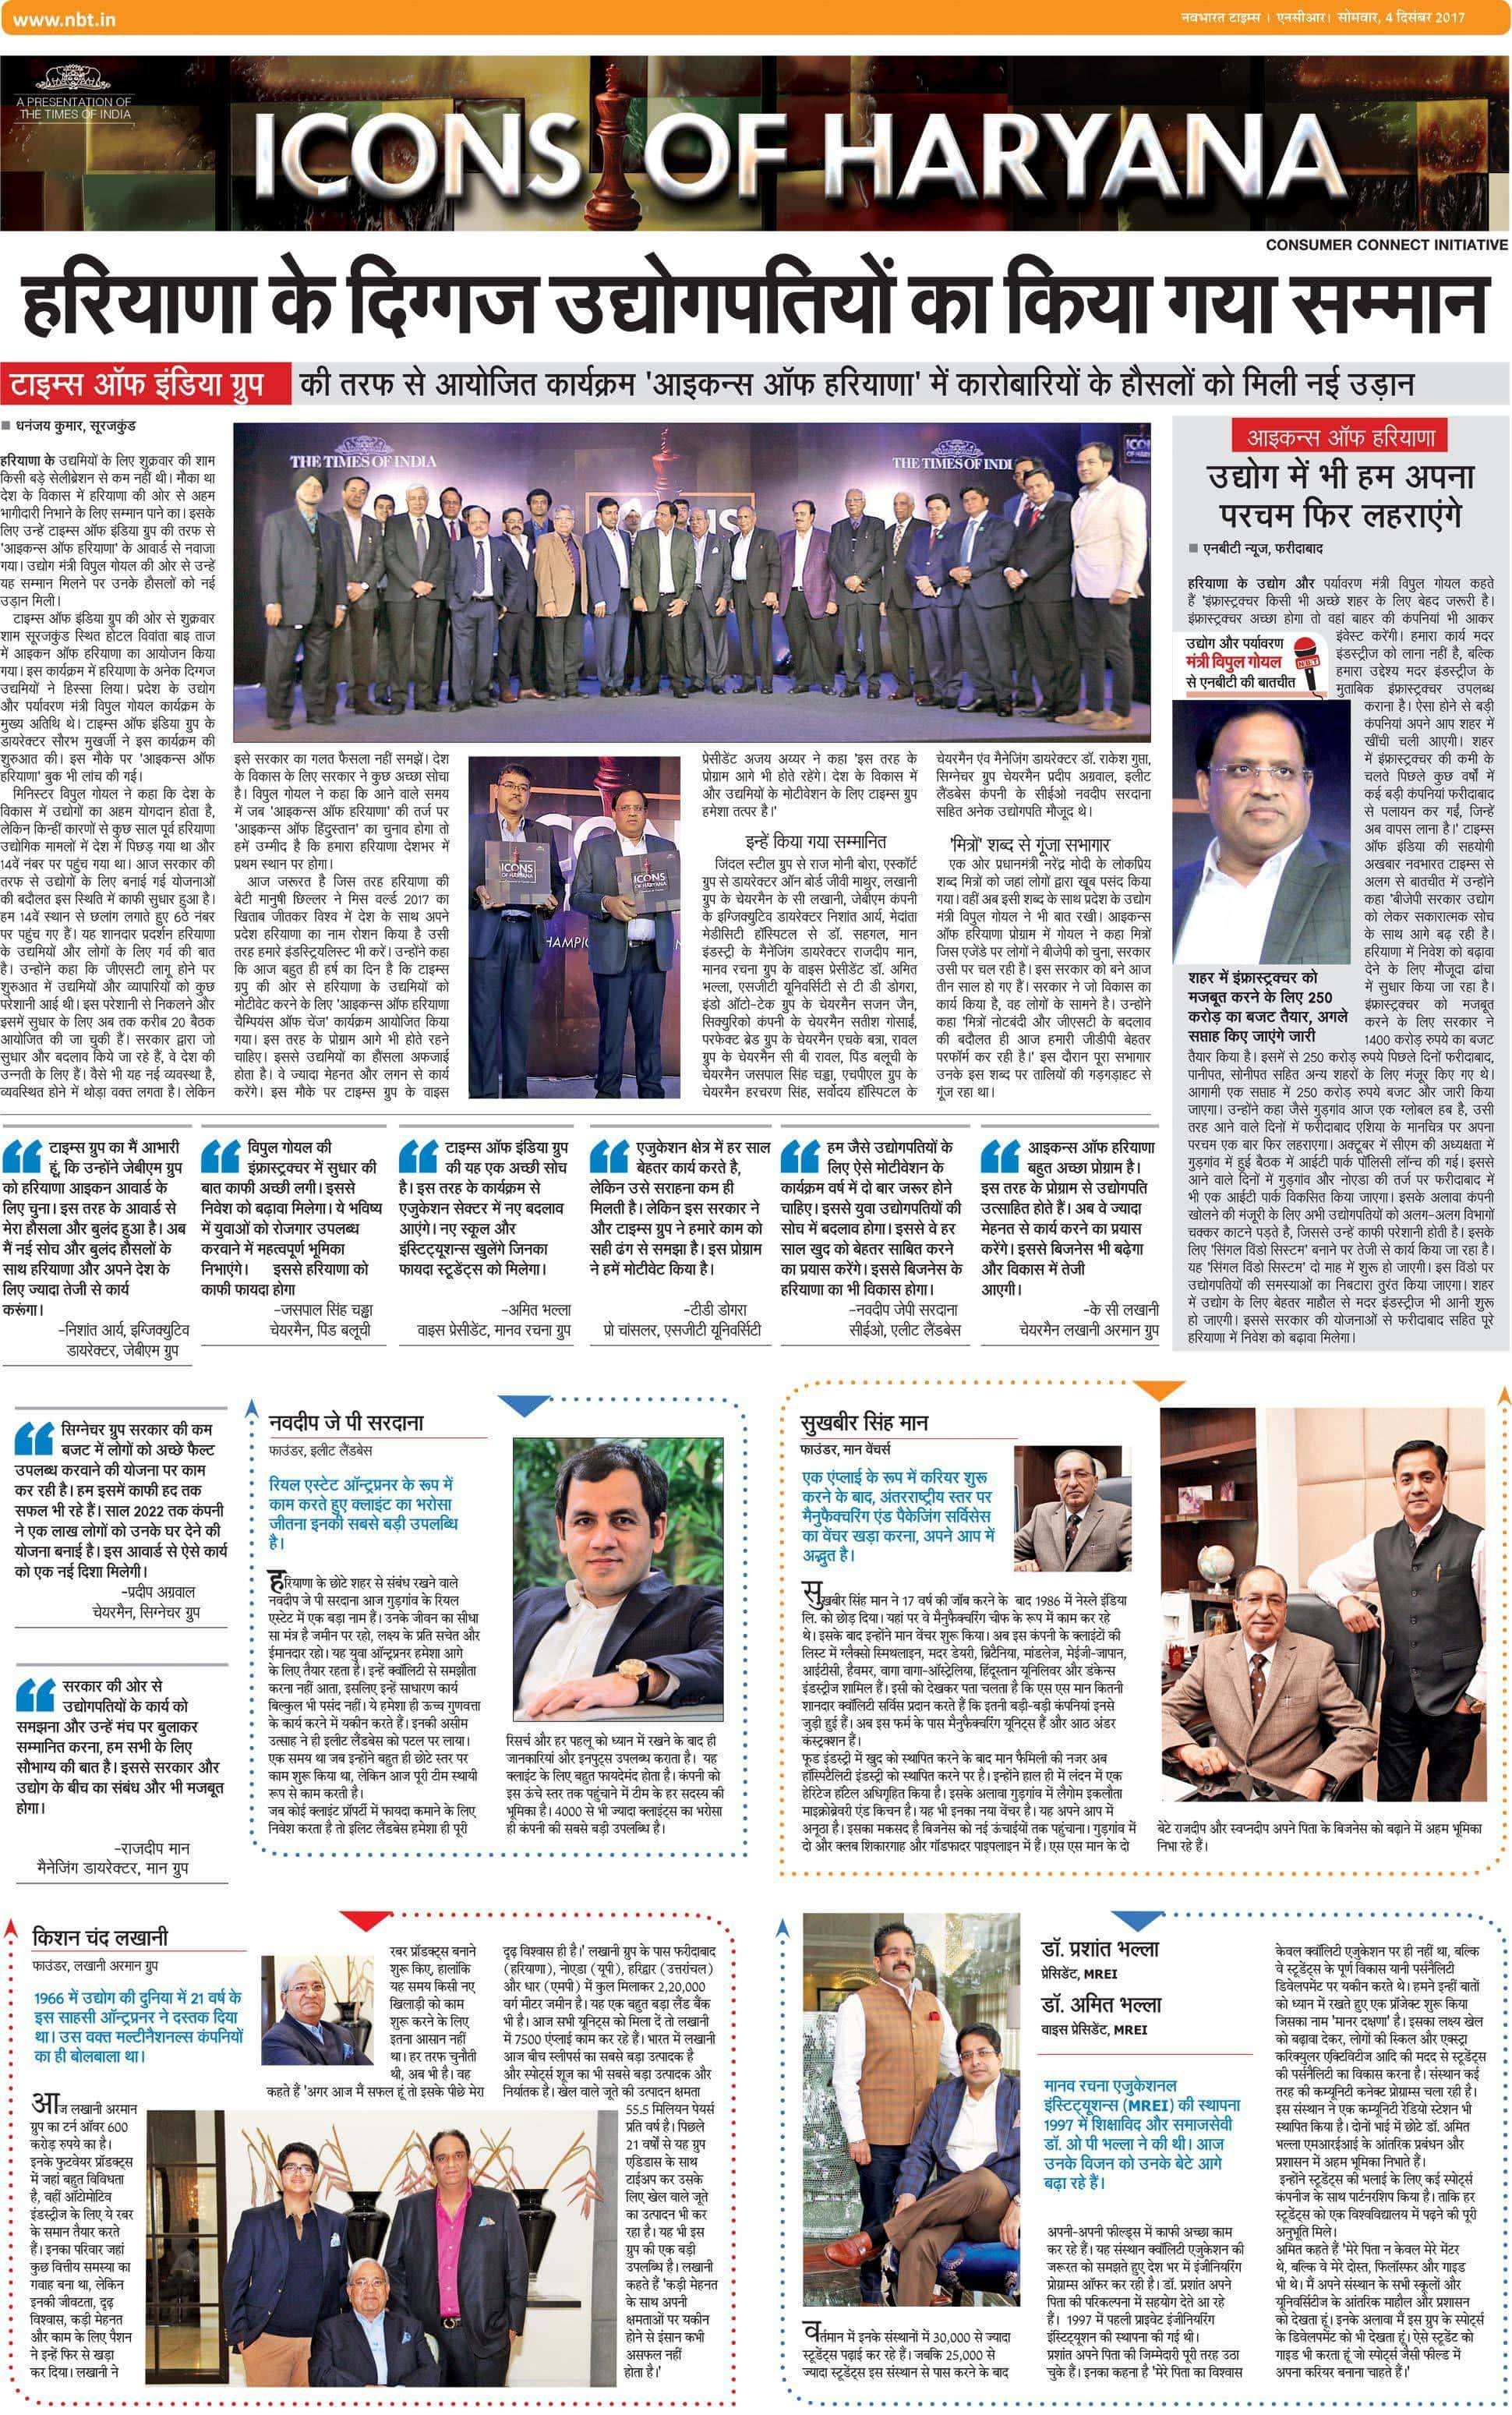 Icons of Haryana - Tribute to Achievers PAR Excellence (Hindi))